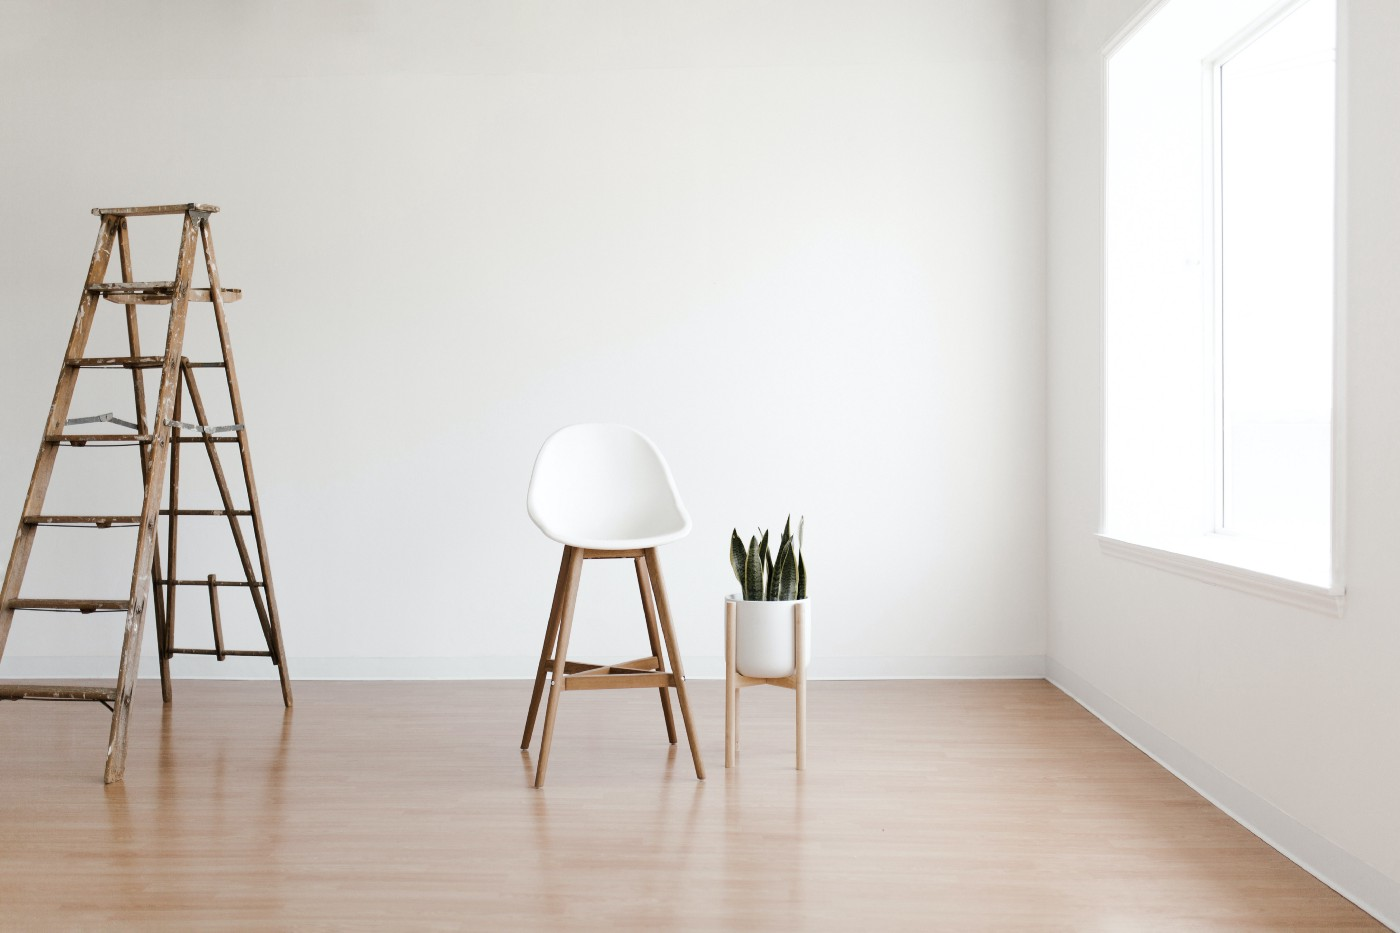 A minimal room with a chair and plant